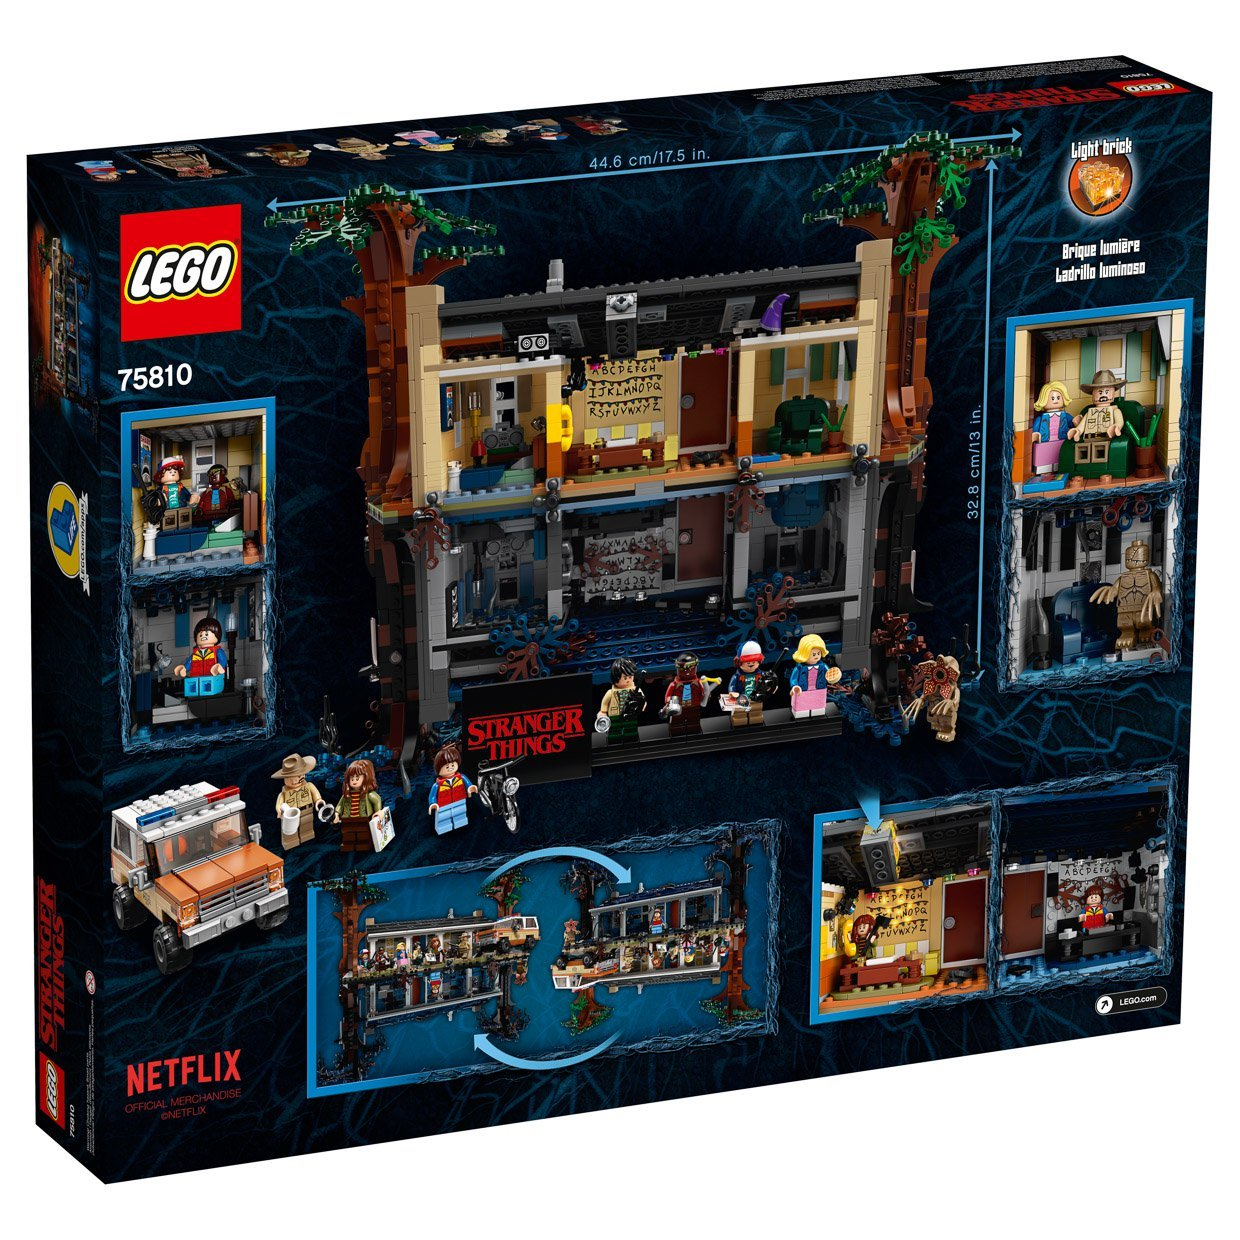 LEGO Stranger Things: The Upside Down, a 2,287-Piece Set